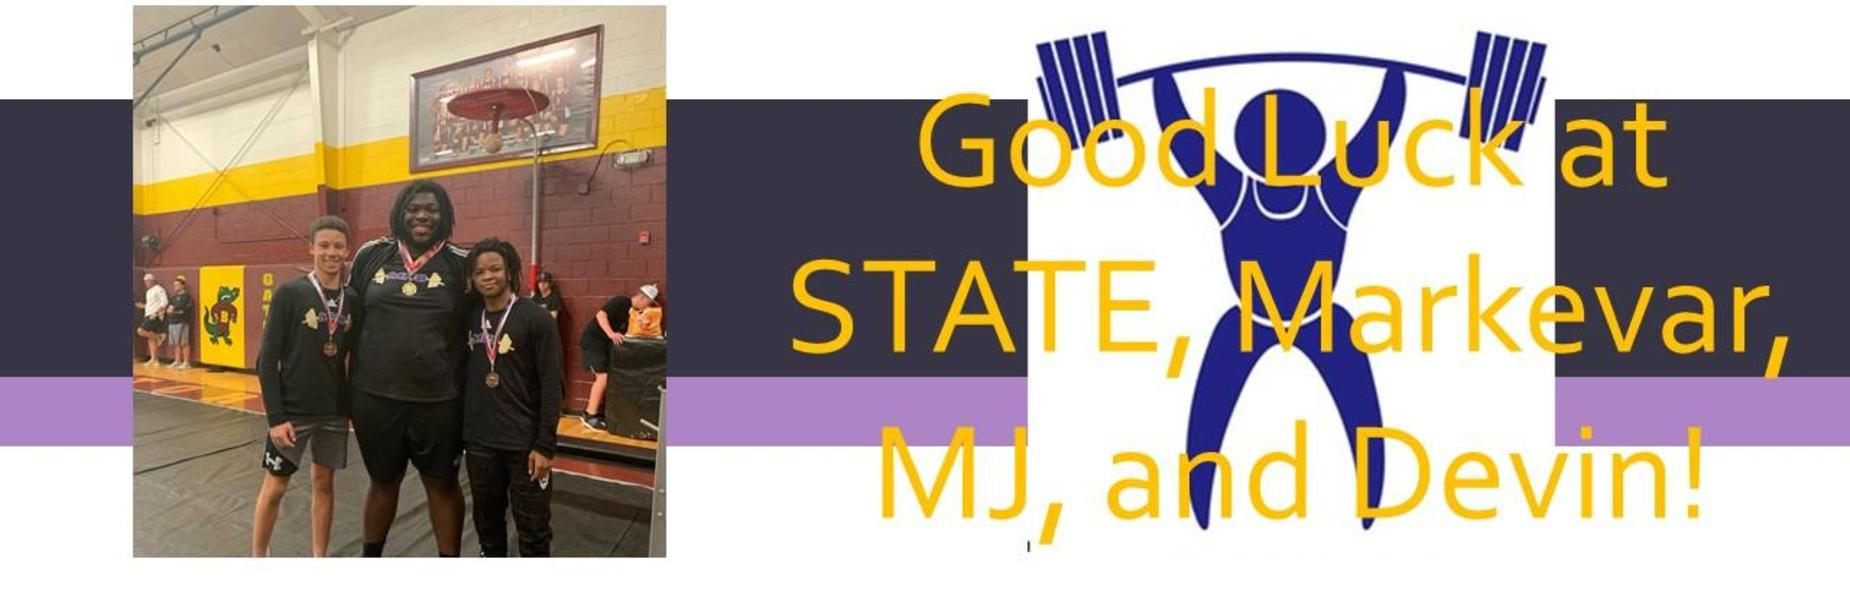 Good Luck at State Markevar, MJ, and Devin!